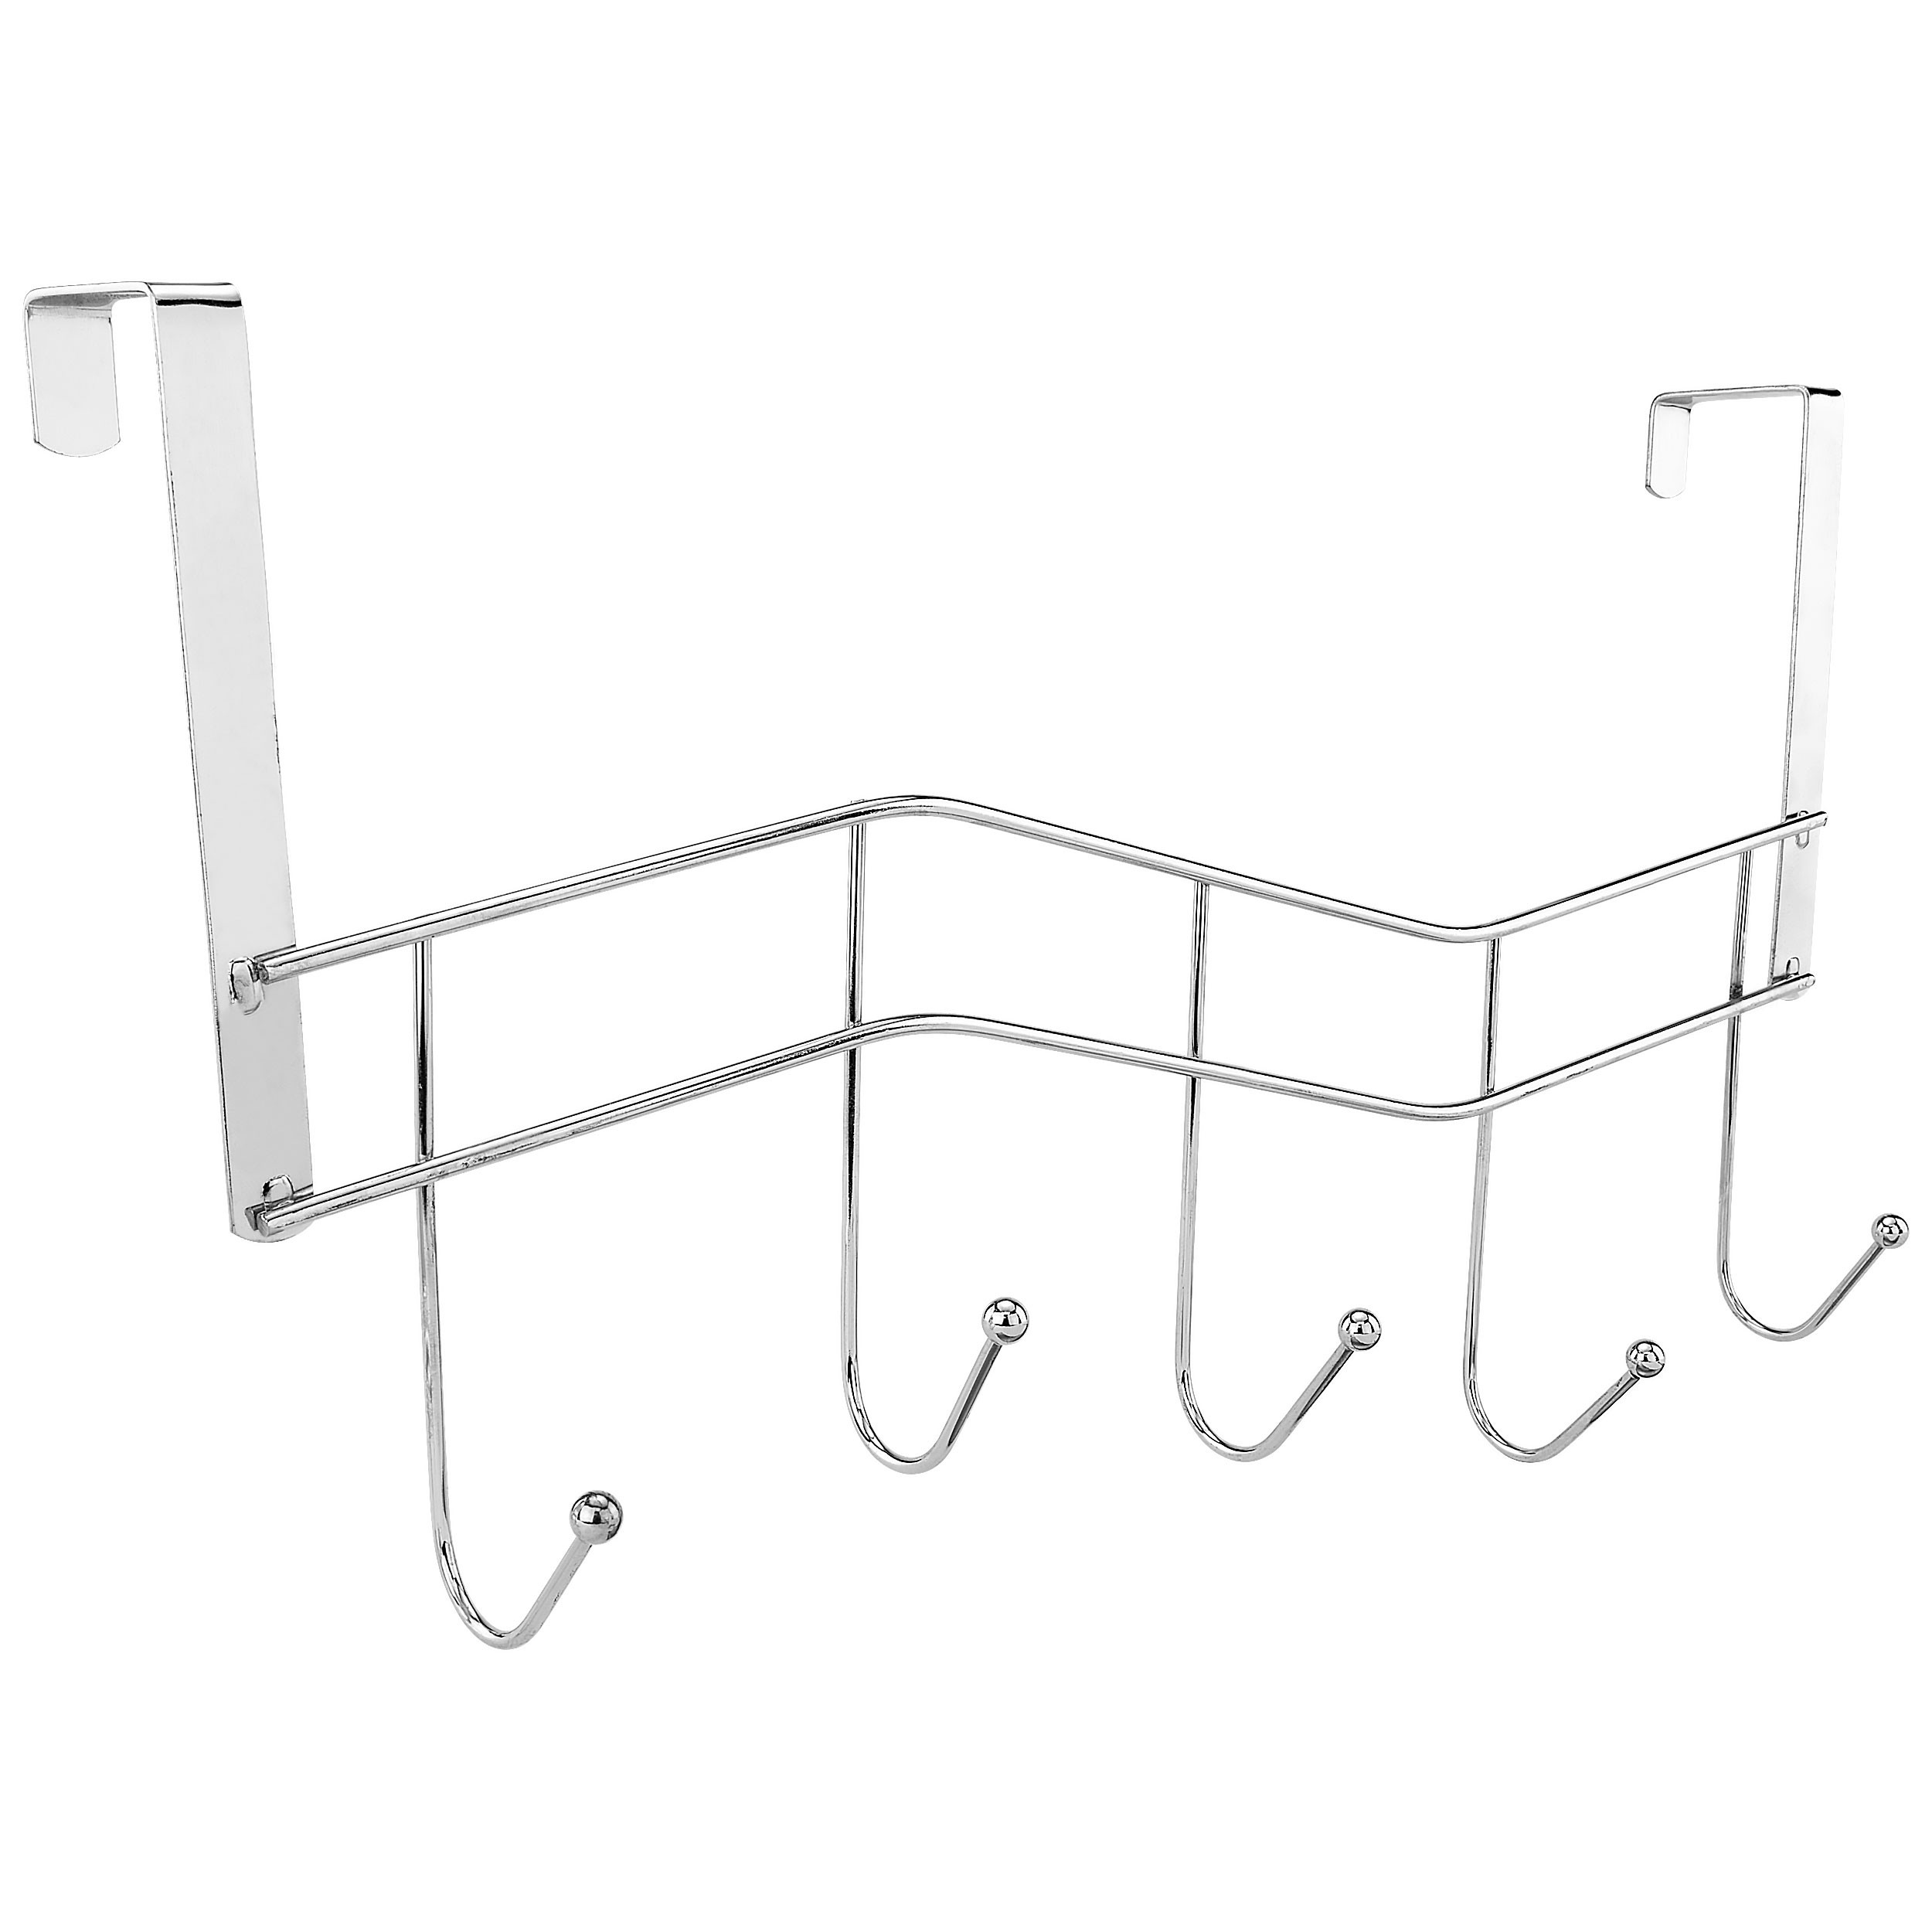 Southern Homewares Over The Door 5 Hook Storage Organizer Rack